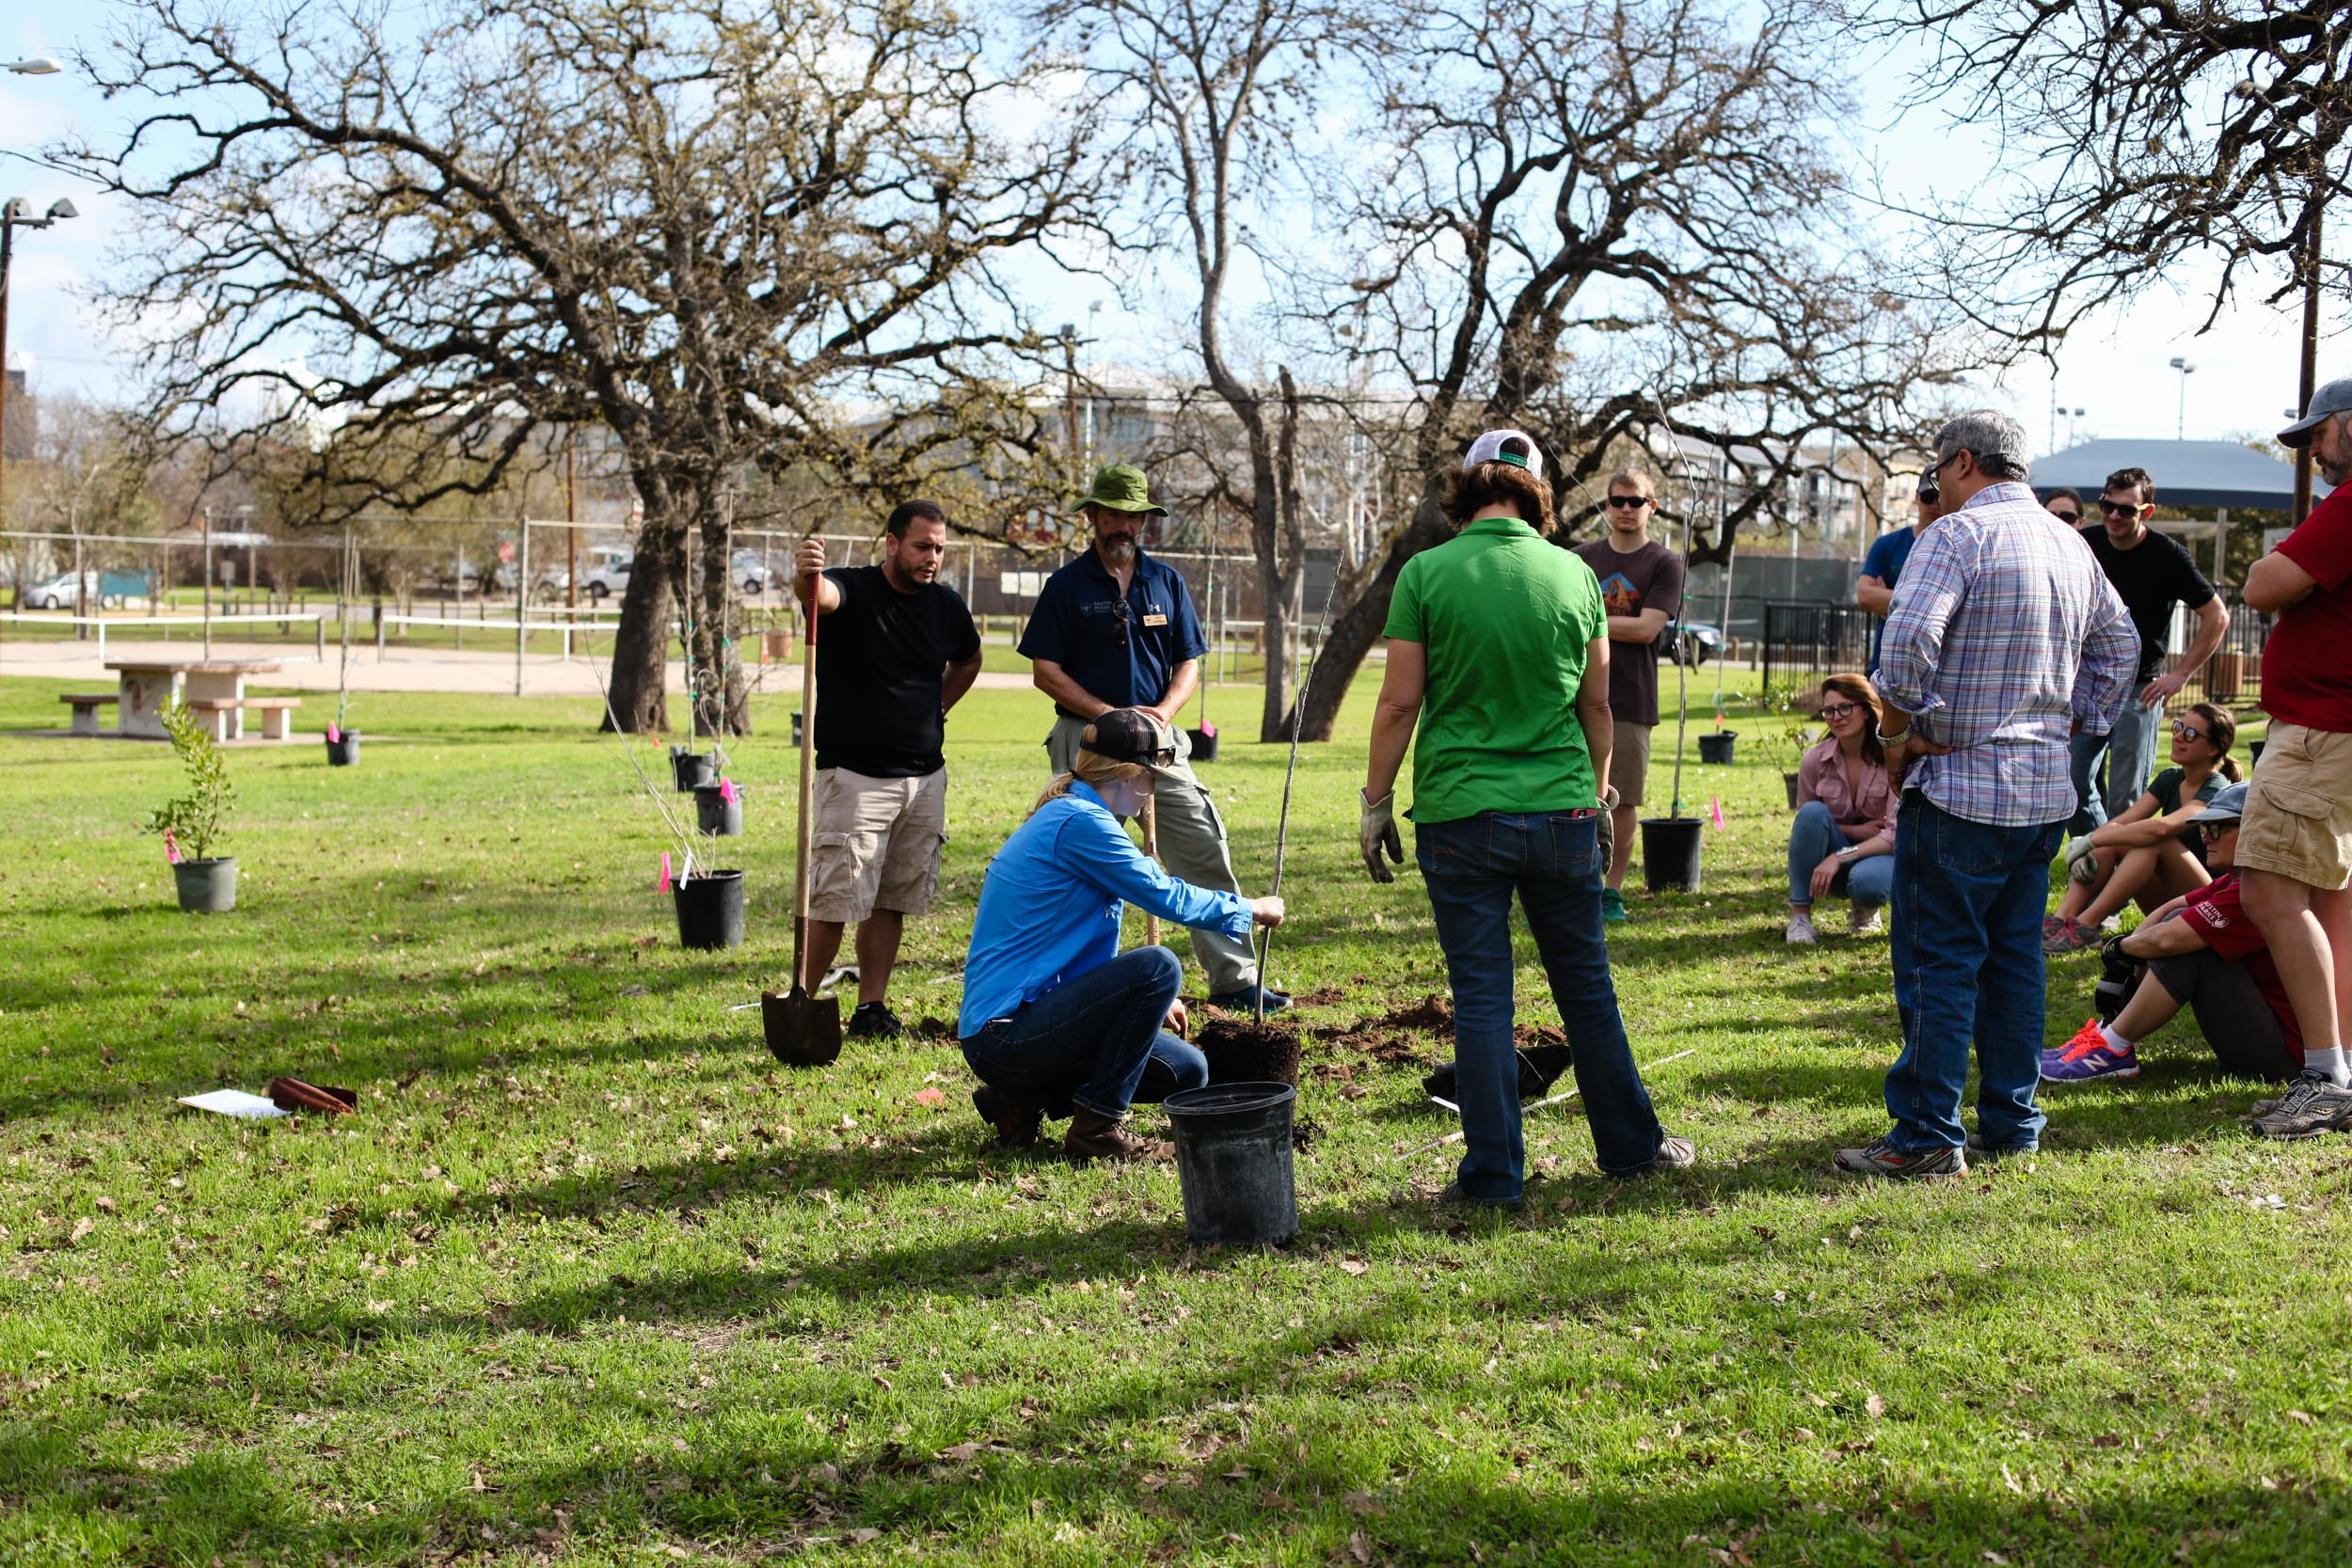 Volunteers plant trees at restoration event led by Tree Folks in Austin, Texas. Photo credit: Tree Folks.